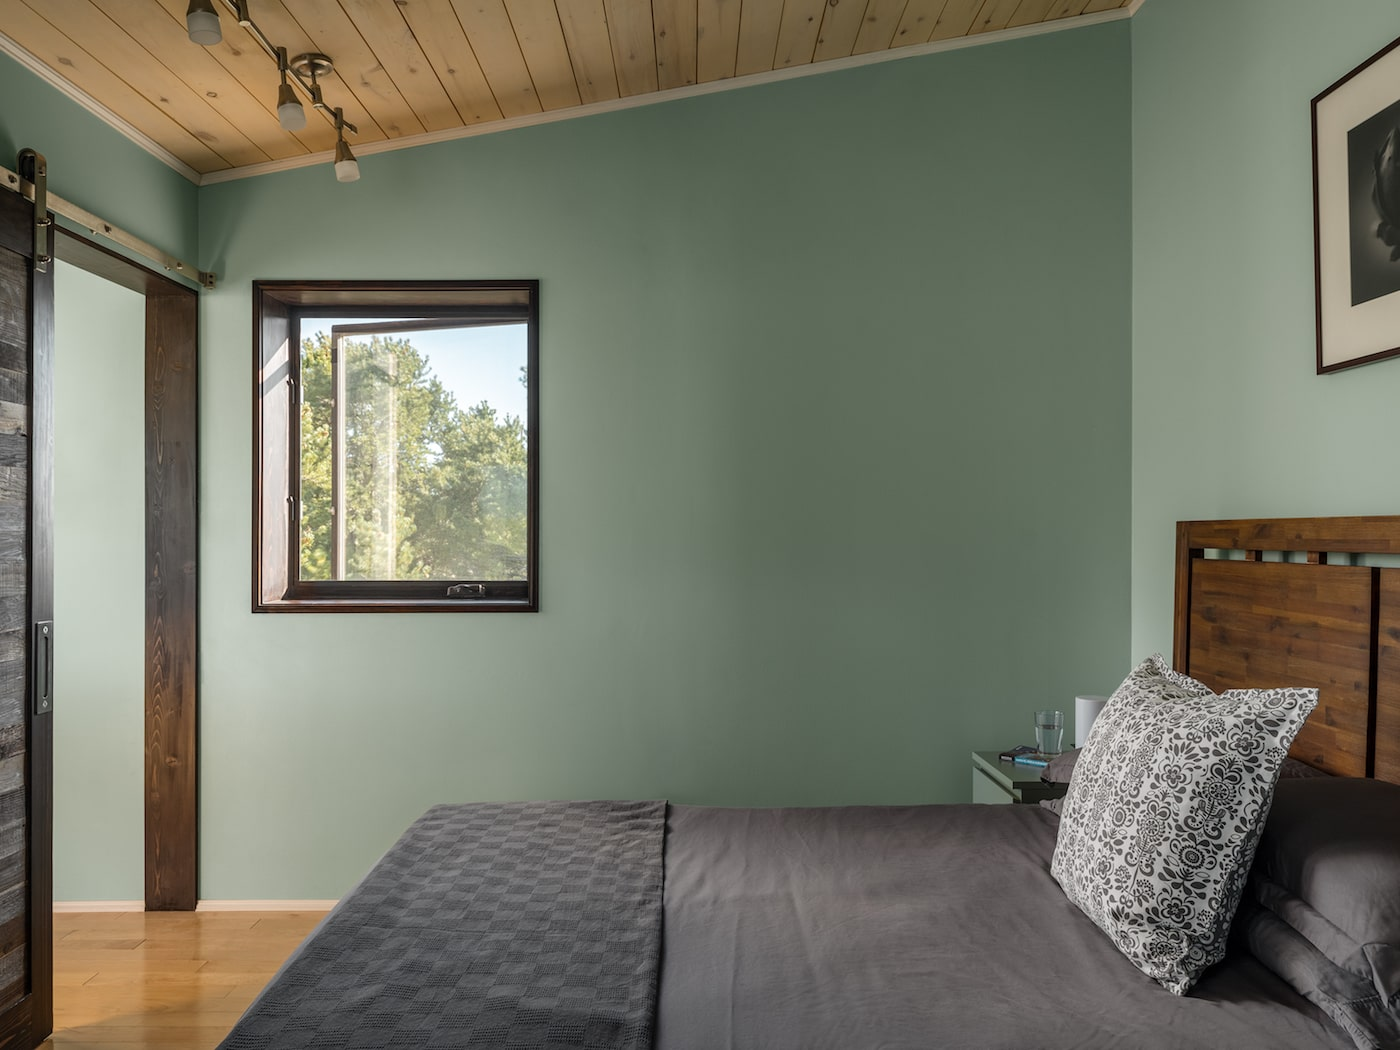 Bedroom with green walls and timber lined ceiling